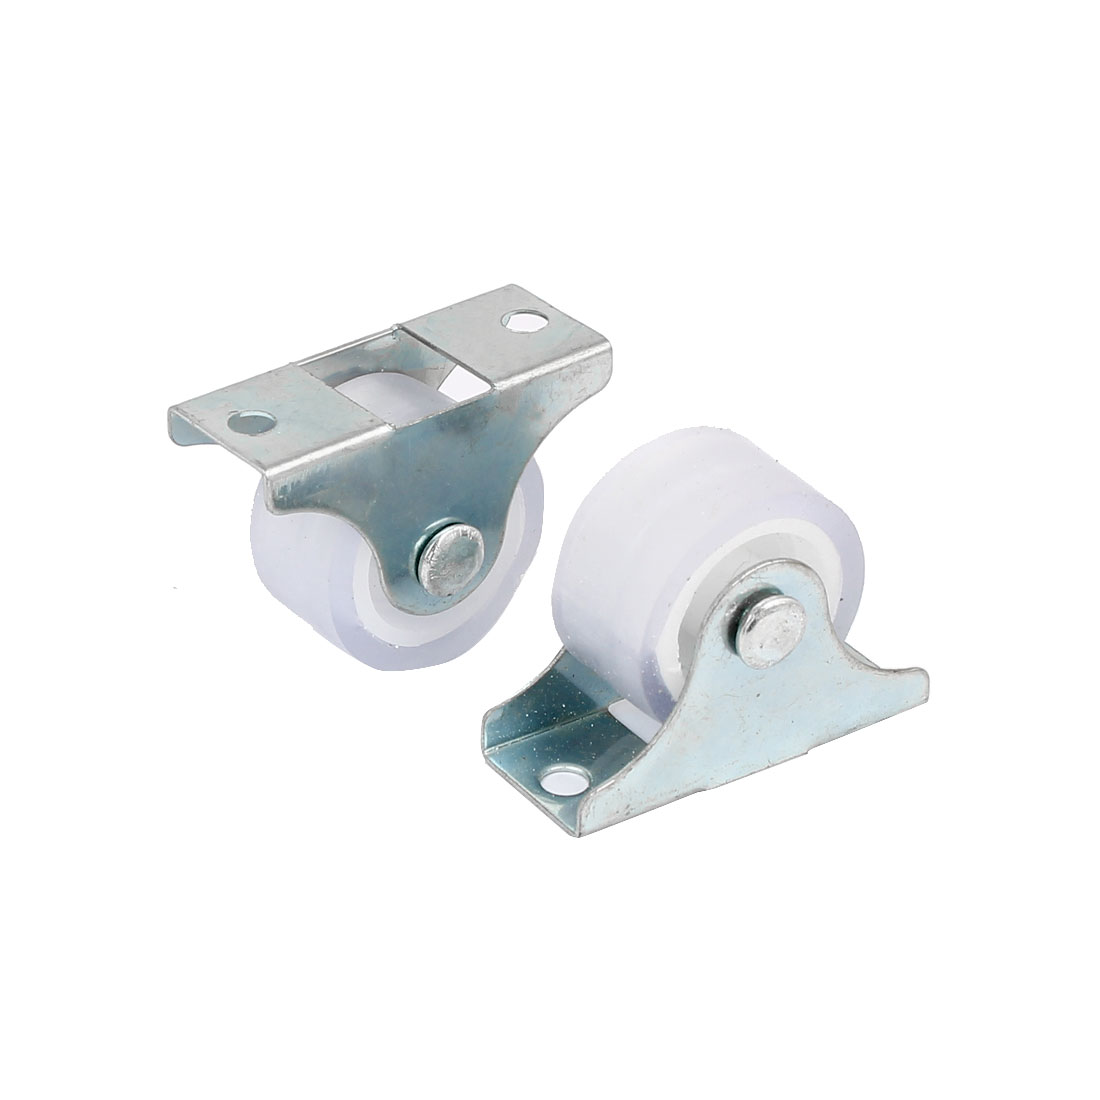 Casters wood stem furniture casters metal furniture casters - Uxcell Furniture Chair Metal Top Plate Fixed Caster Wheels Silver Tone 1 Dia 2 Pcs